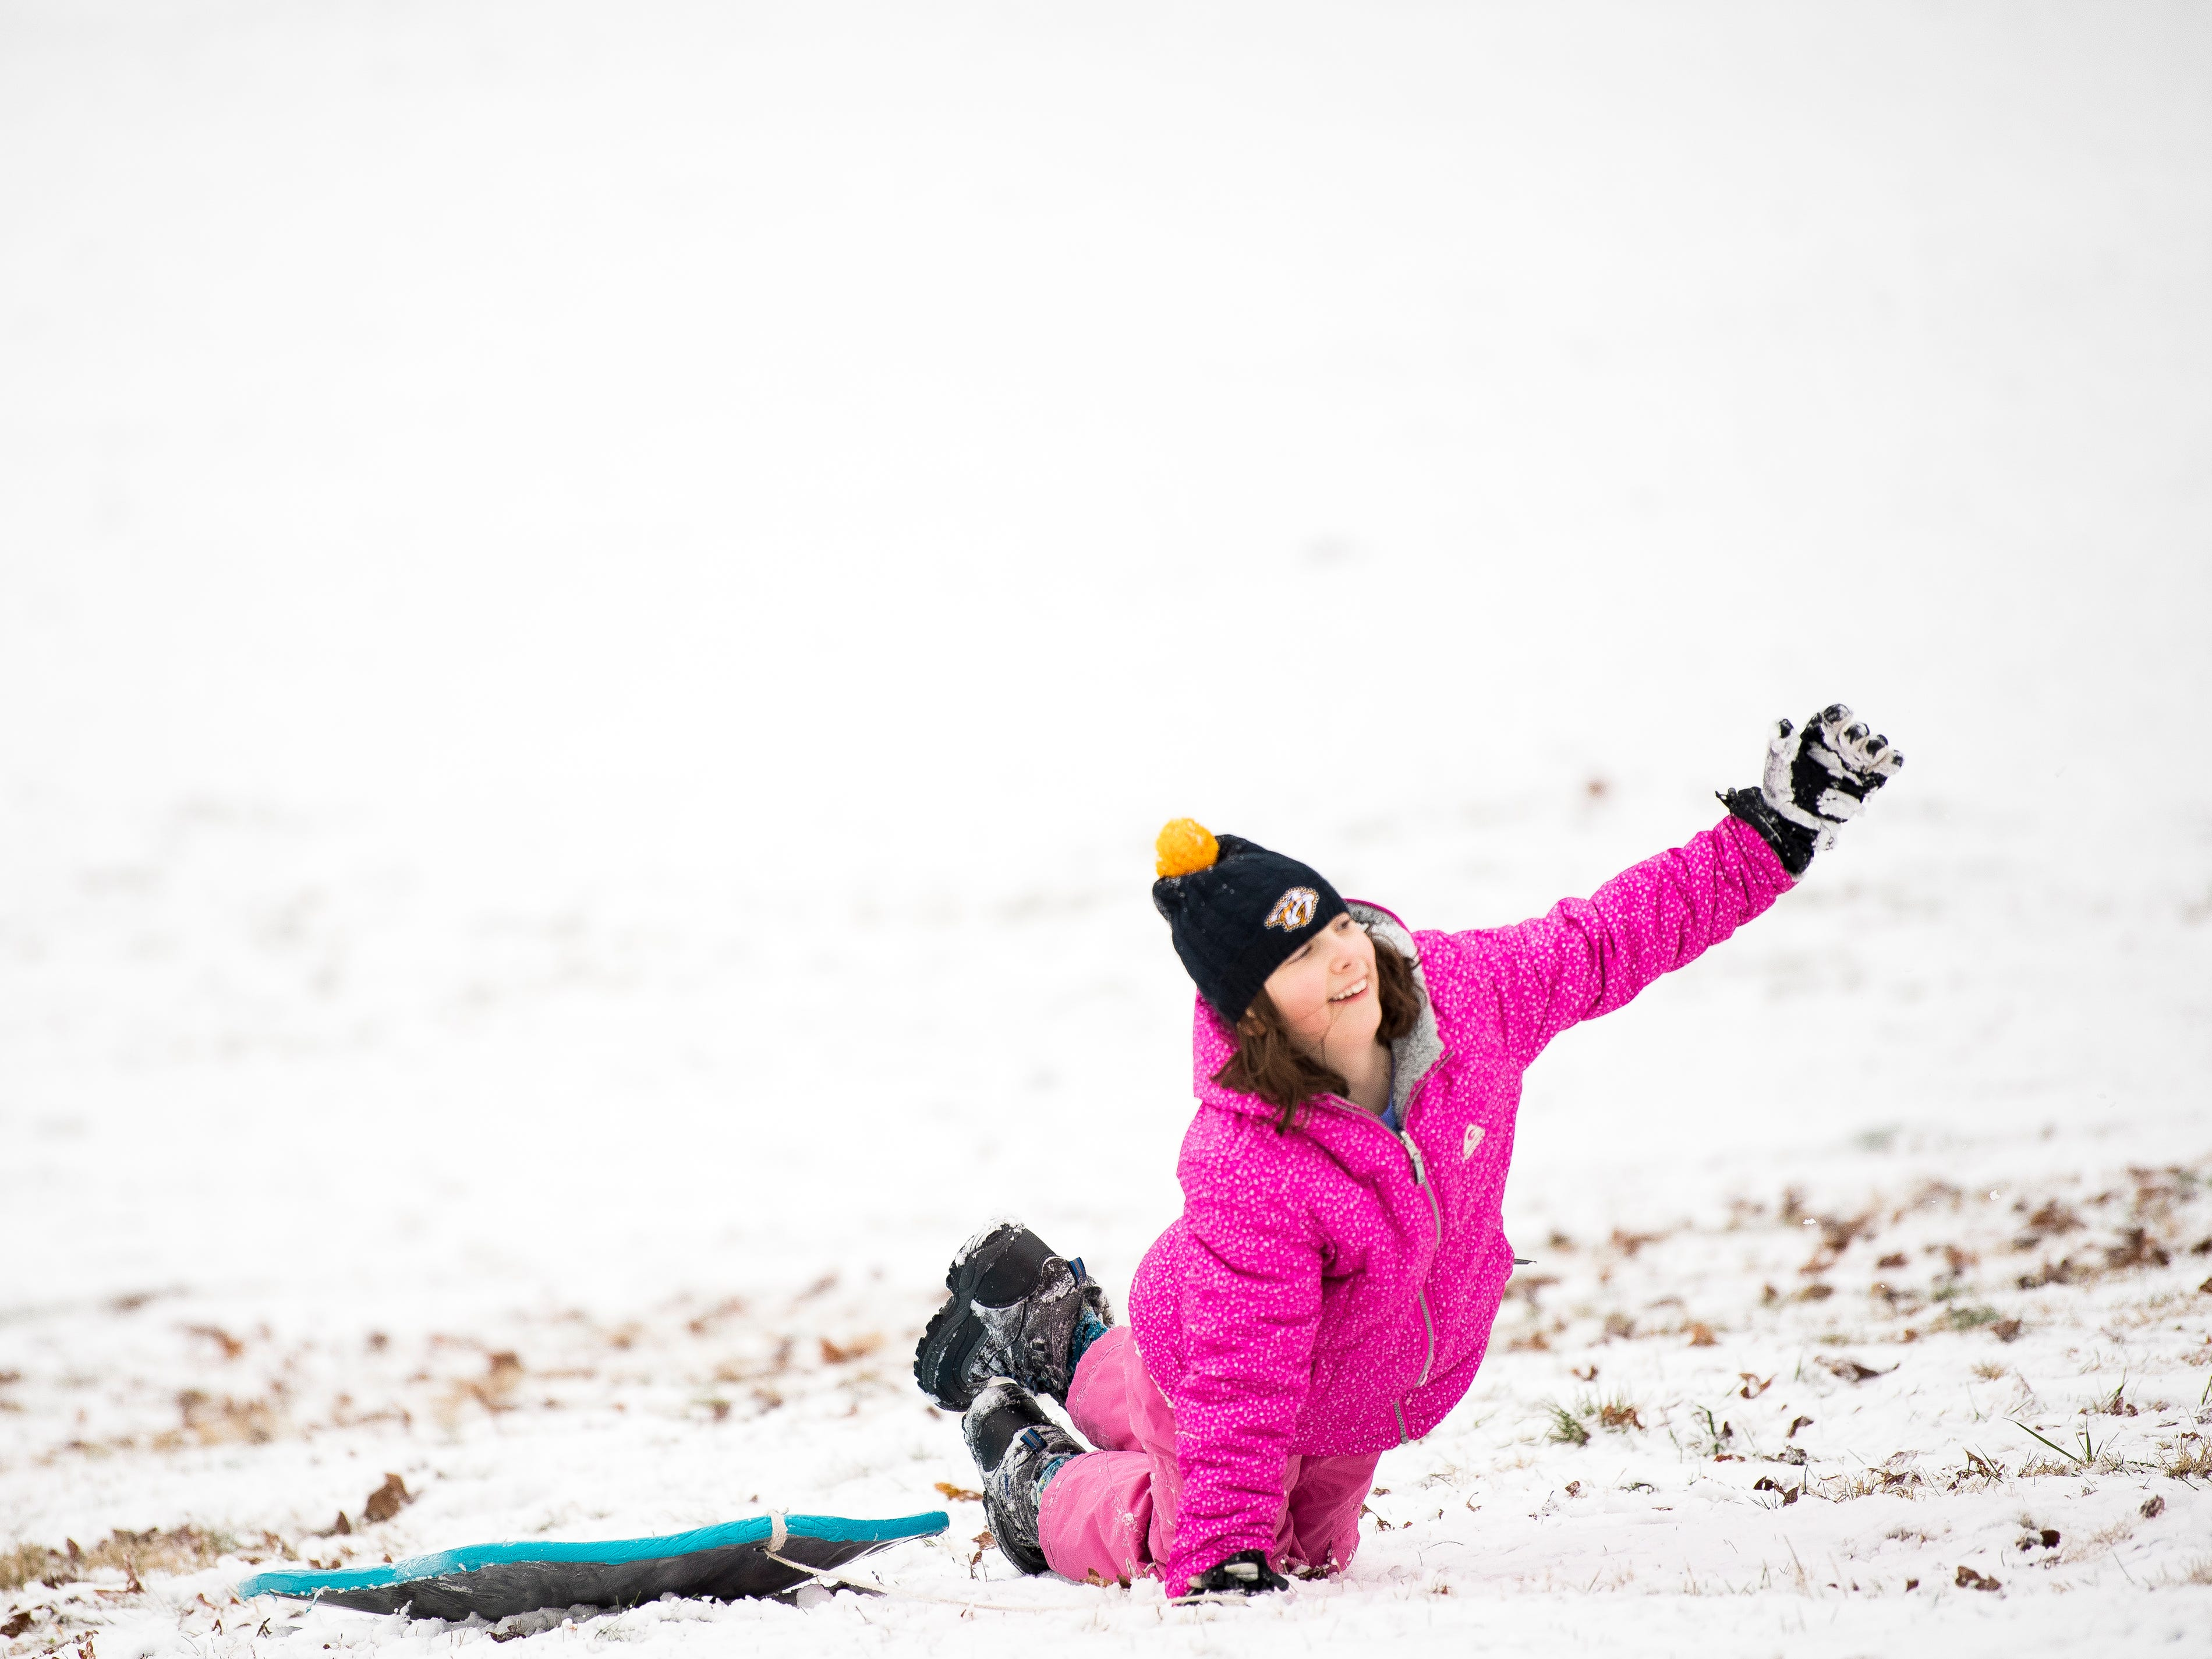 Ainsley Patterson struggles climbing back up a steep hill with her sled at Lakeshore Park in Knoxville on Tuesday, January 29, 2019.